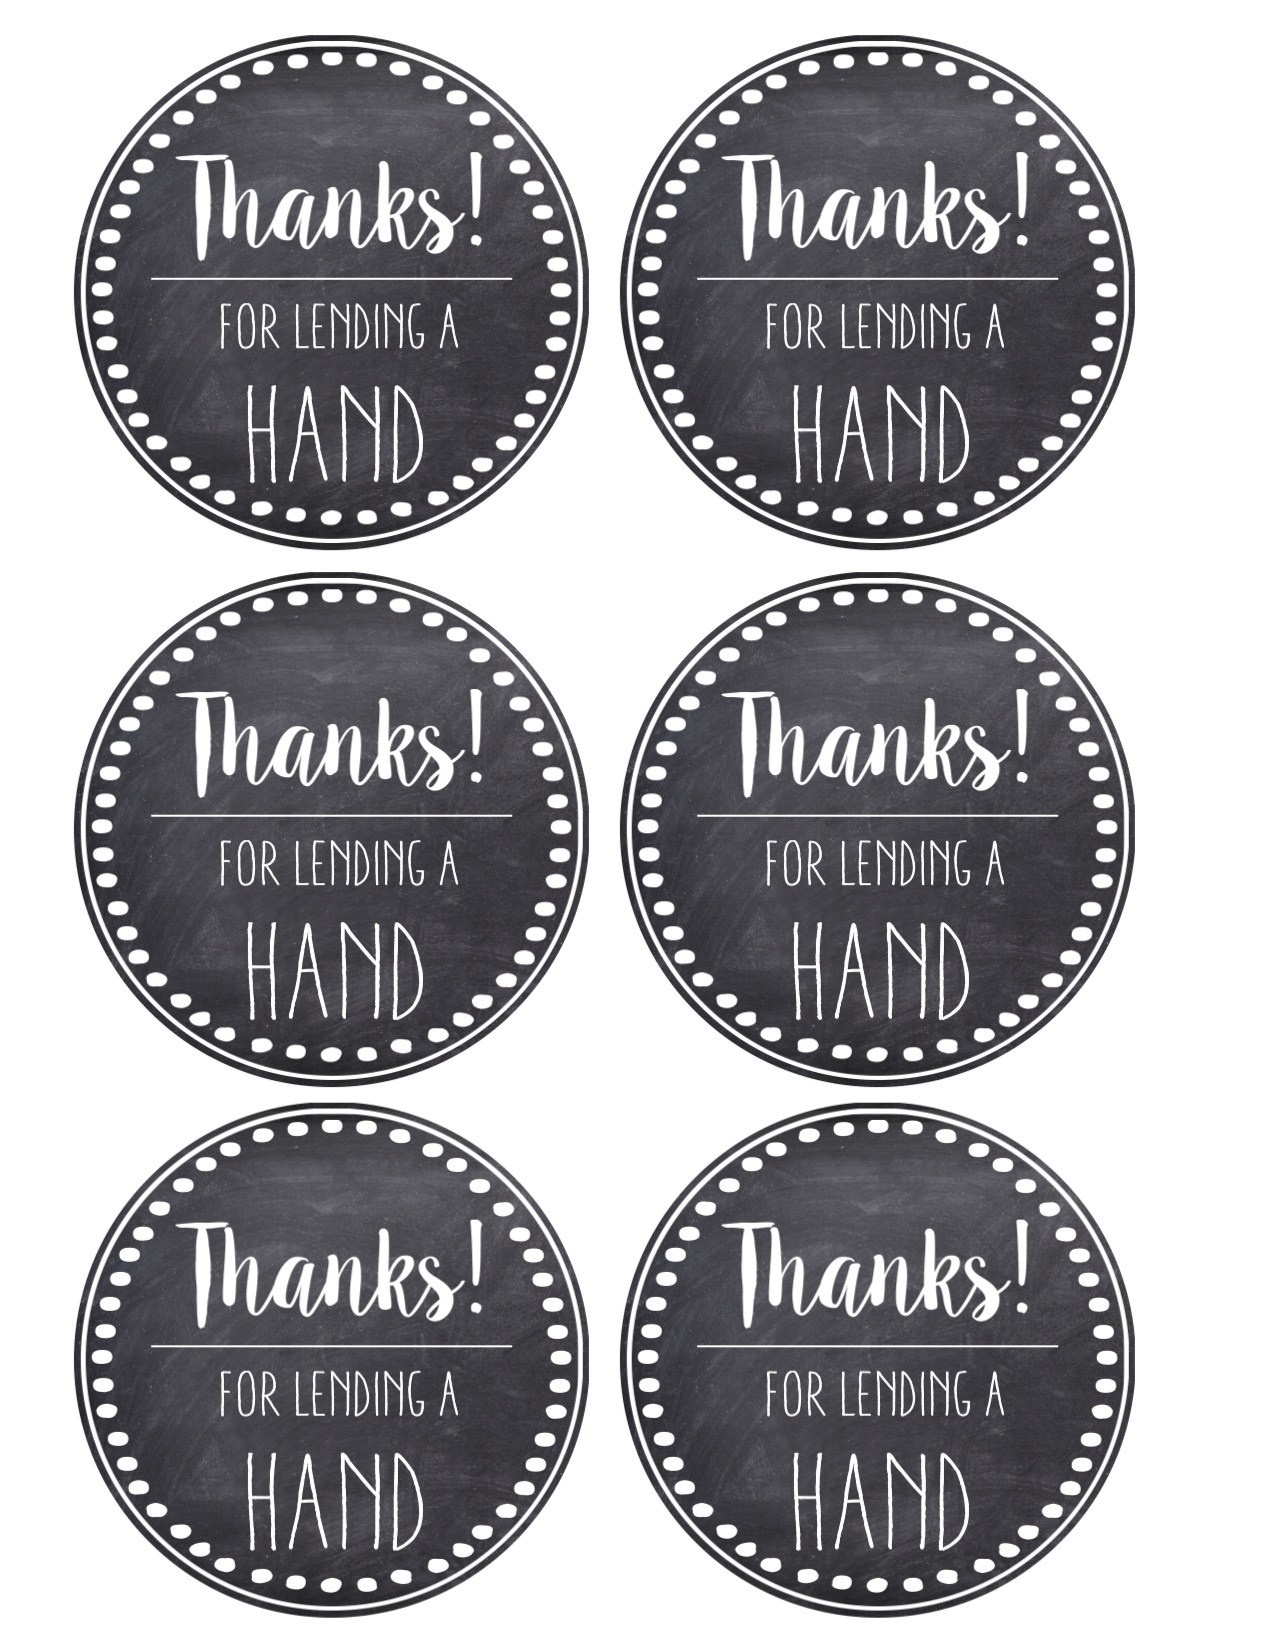 Thank You & Teacher Appreciation Tags Free Printable - Paper Trail - Free Printable Tags For Teacher Appreciation